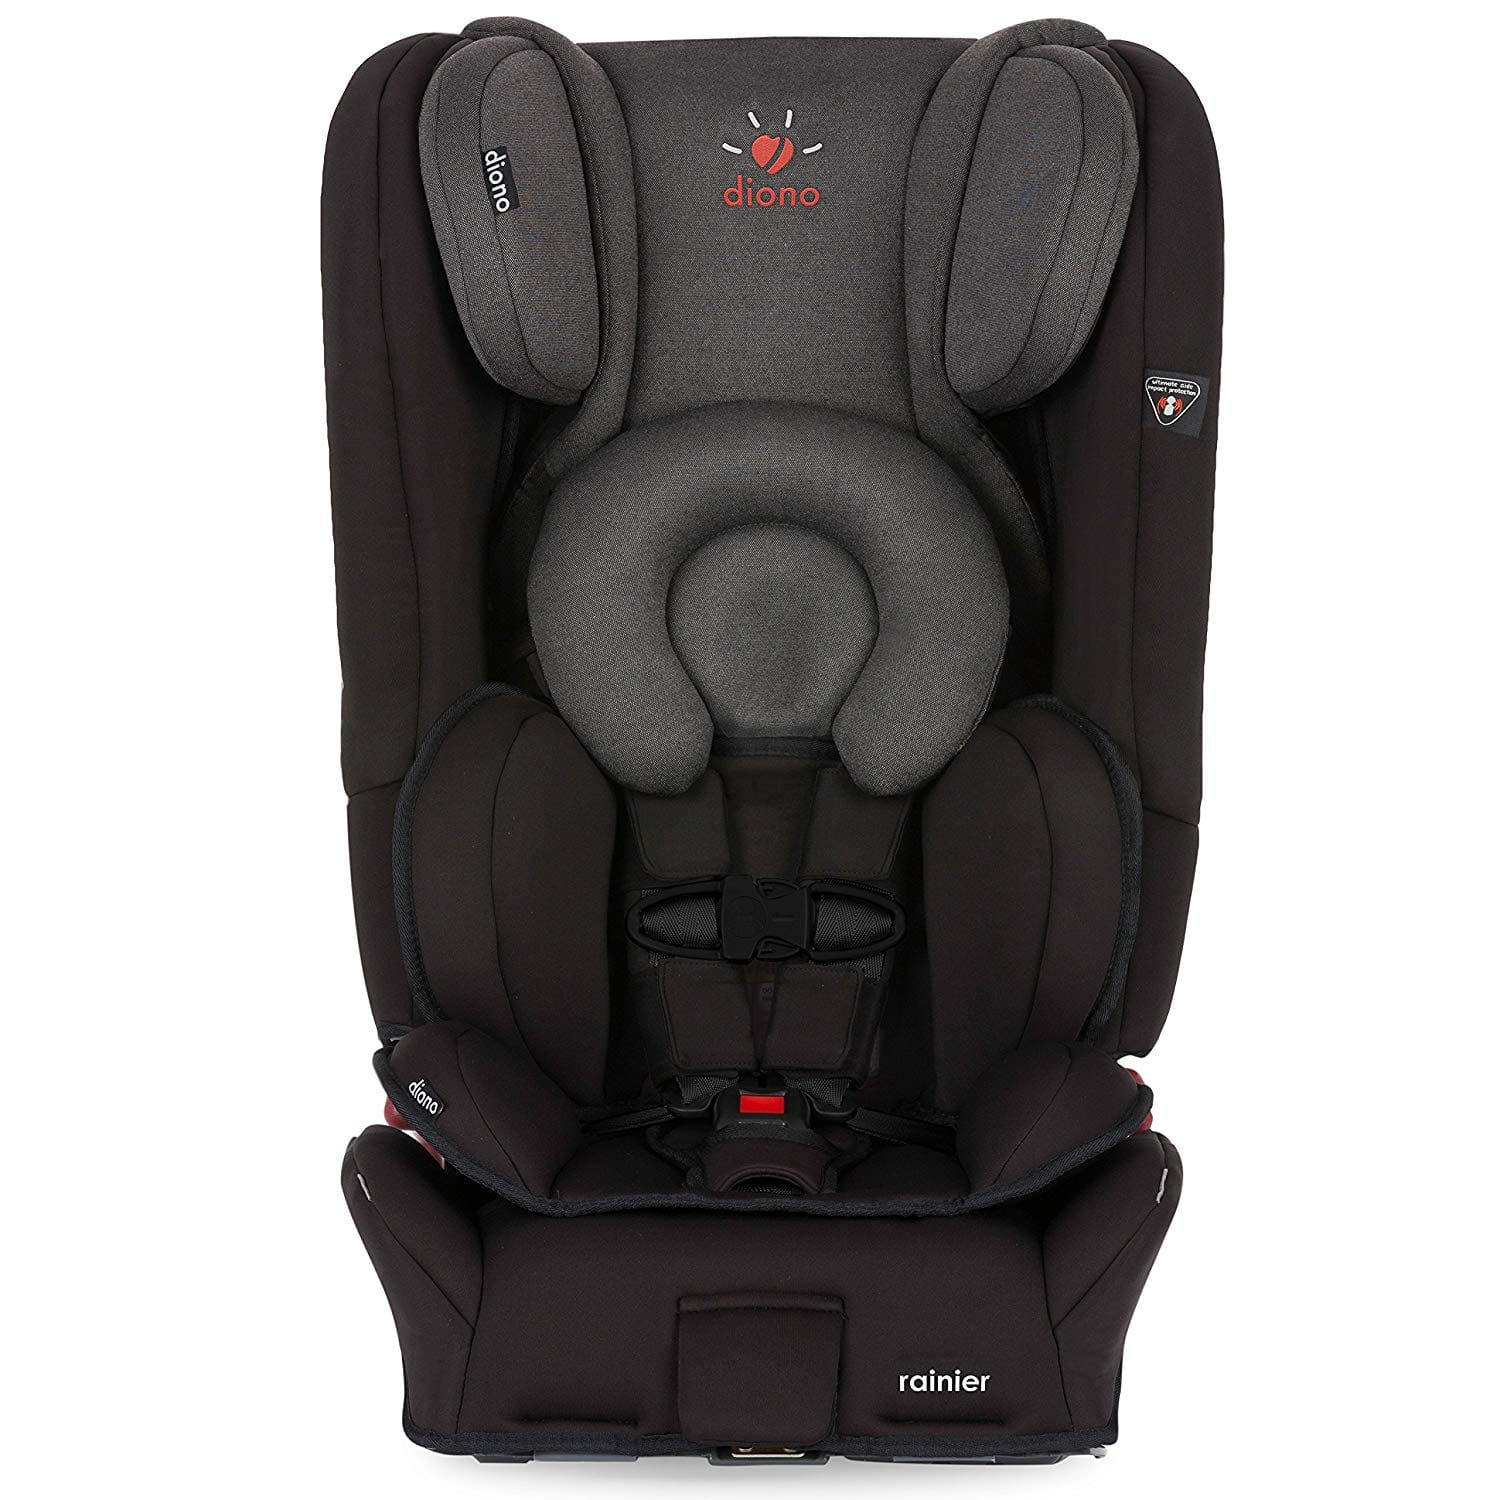 Diono Rainier All-In-One Convertible Car Seat, Black Mist $249 Amazon Prime Deal or $187 with AMEX Rewards